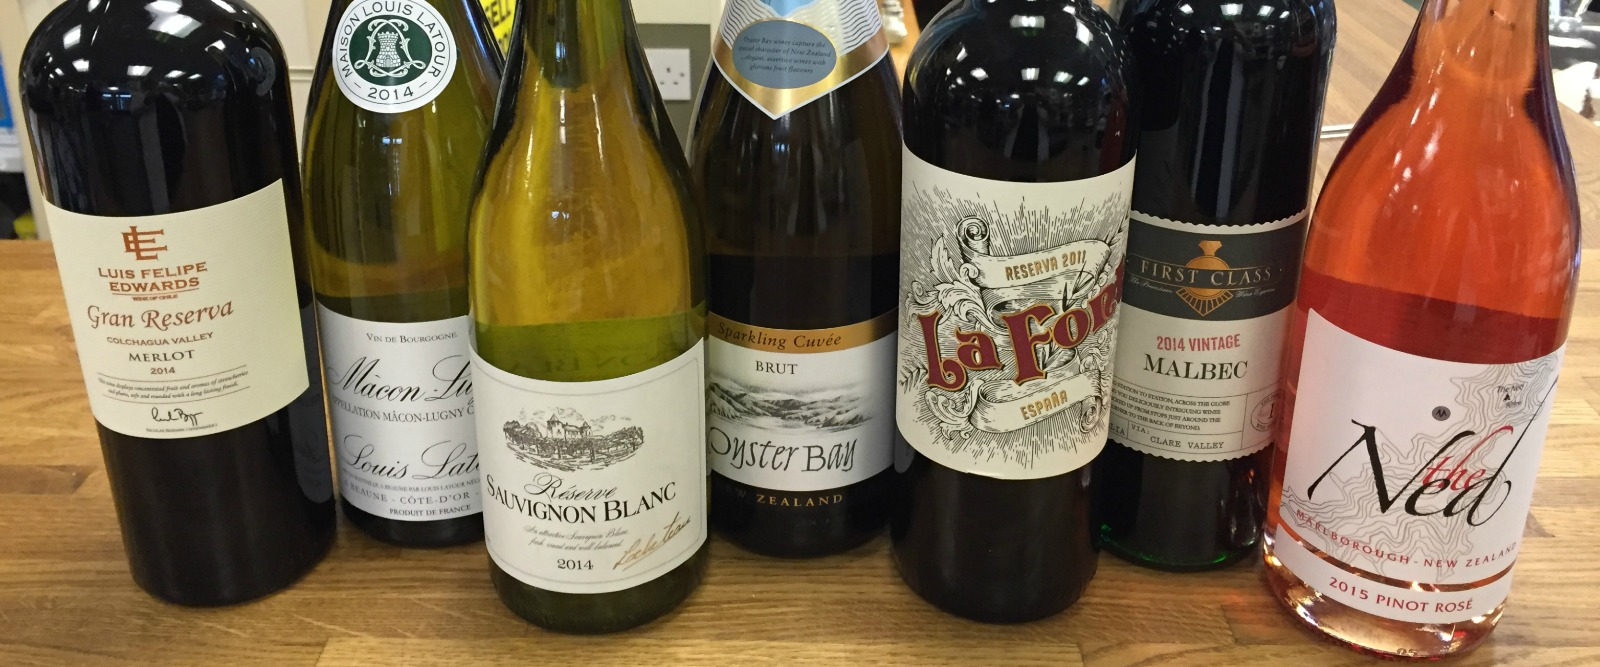 Wide range of wines in store